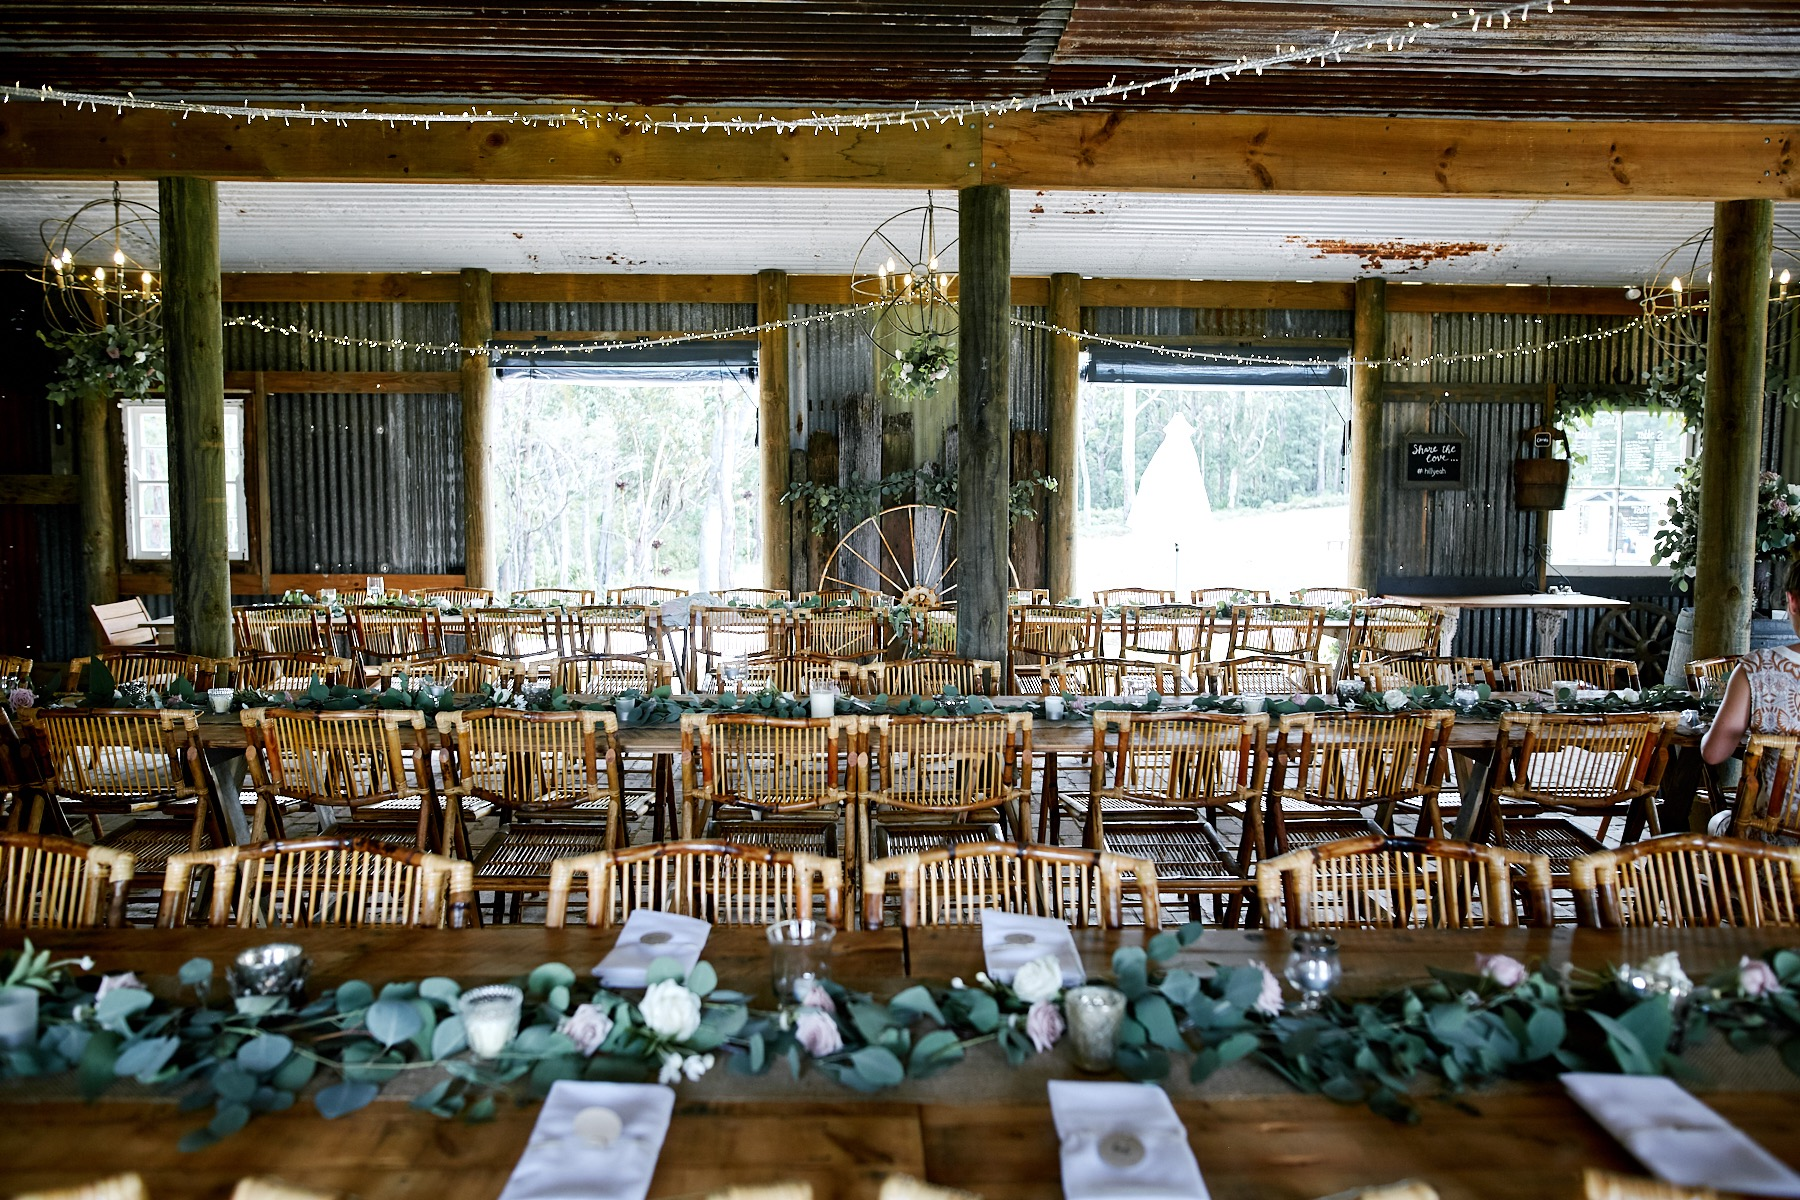 Wedding reception set up at The Stables of Somersby. Wedding Coordination, Wedding Planning and Day Of Styling by Samantha Burke Events